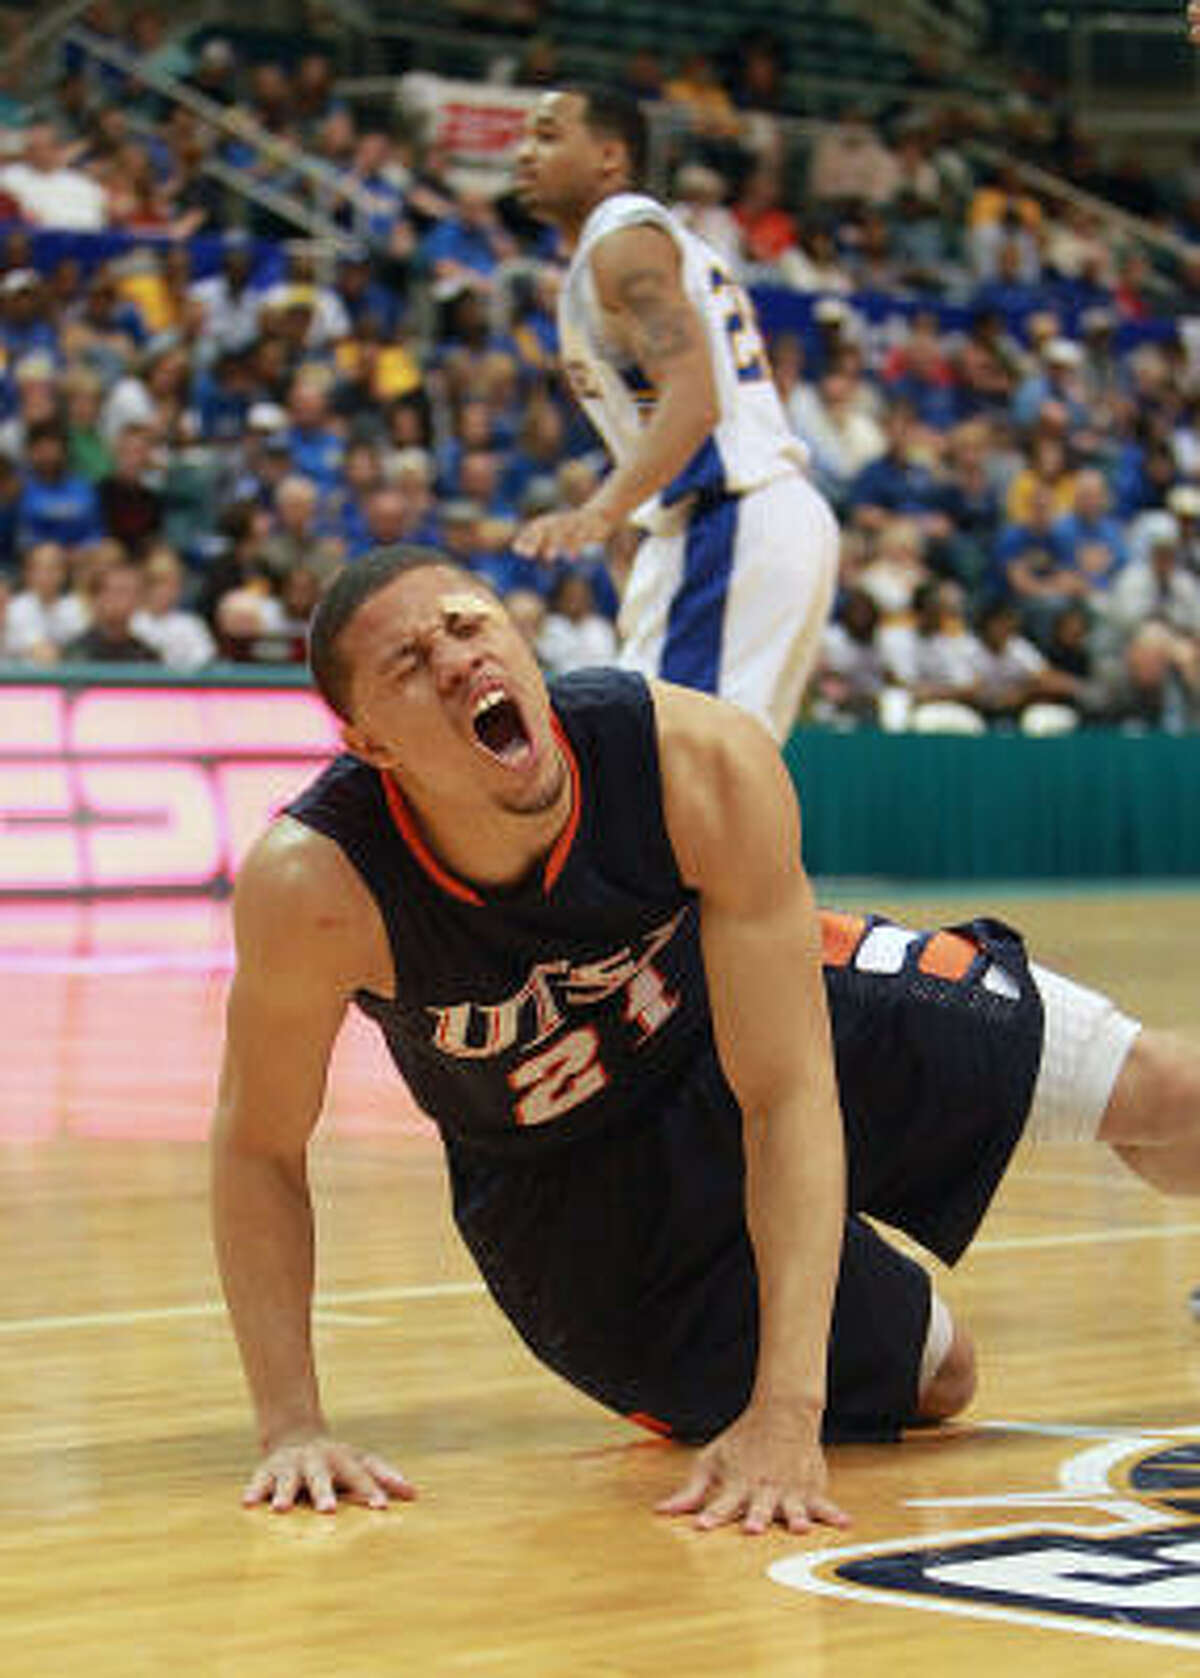 Texas-San Antonio's Devin Gibson reacts after making a shot.